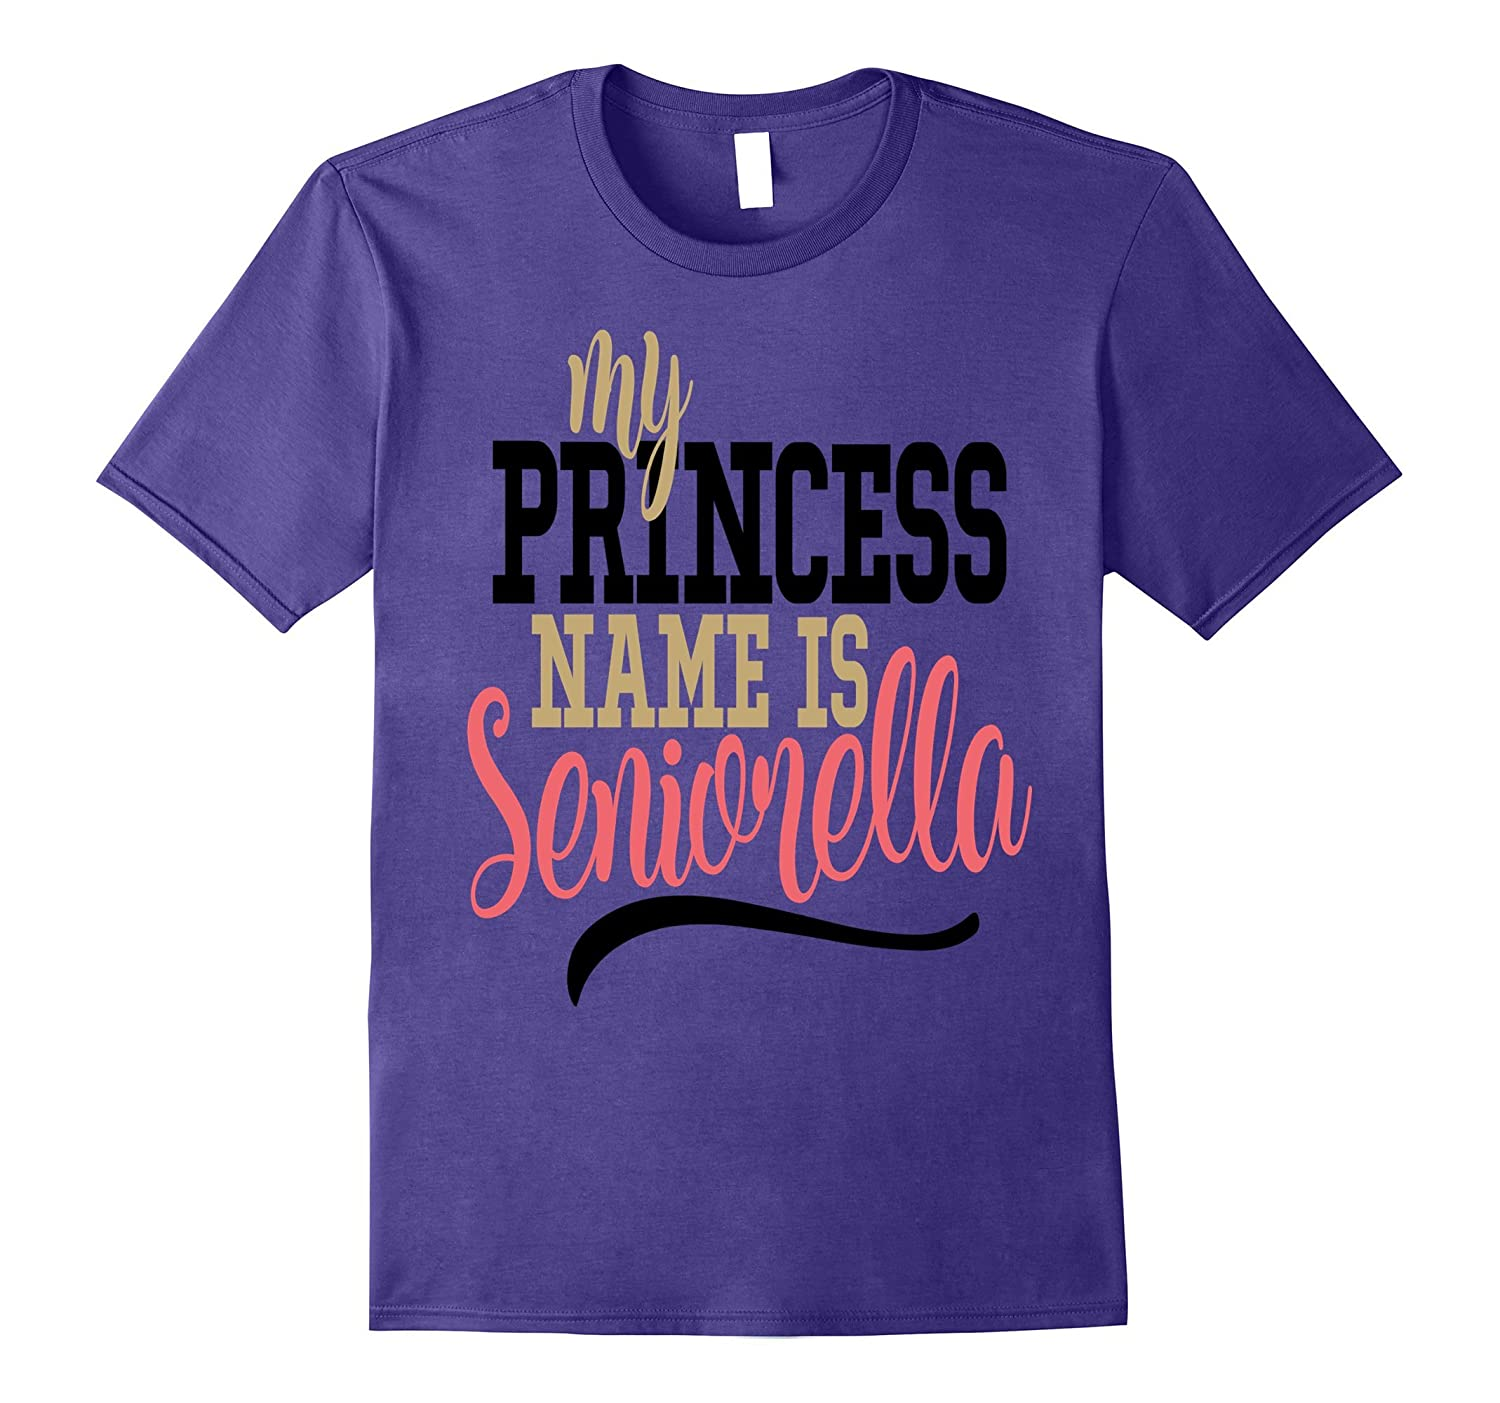 Senior Class of 2017 Shirt Daughter Princess Name Seniorella-CD